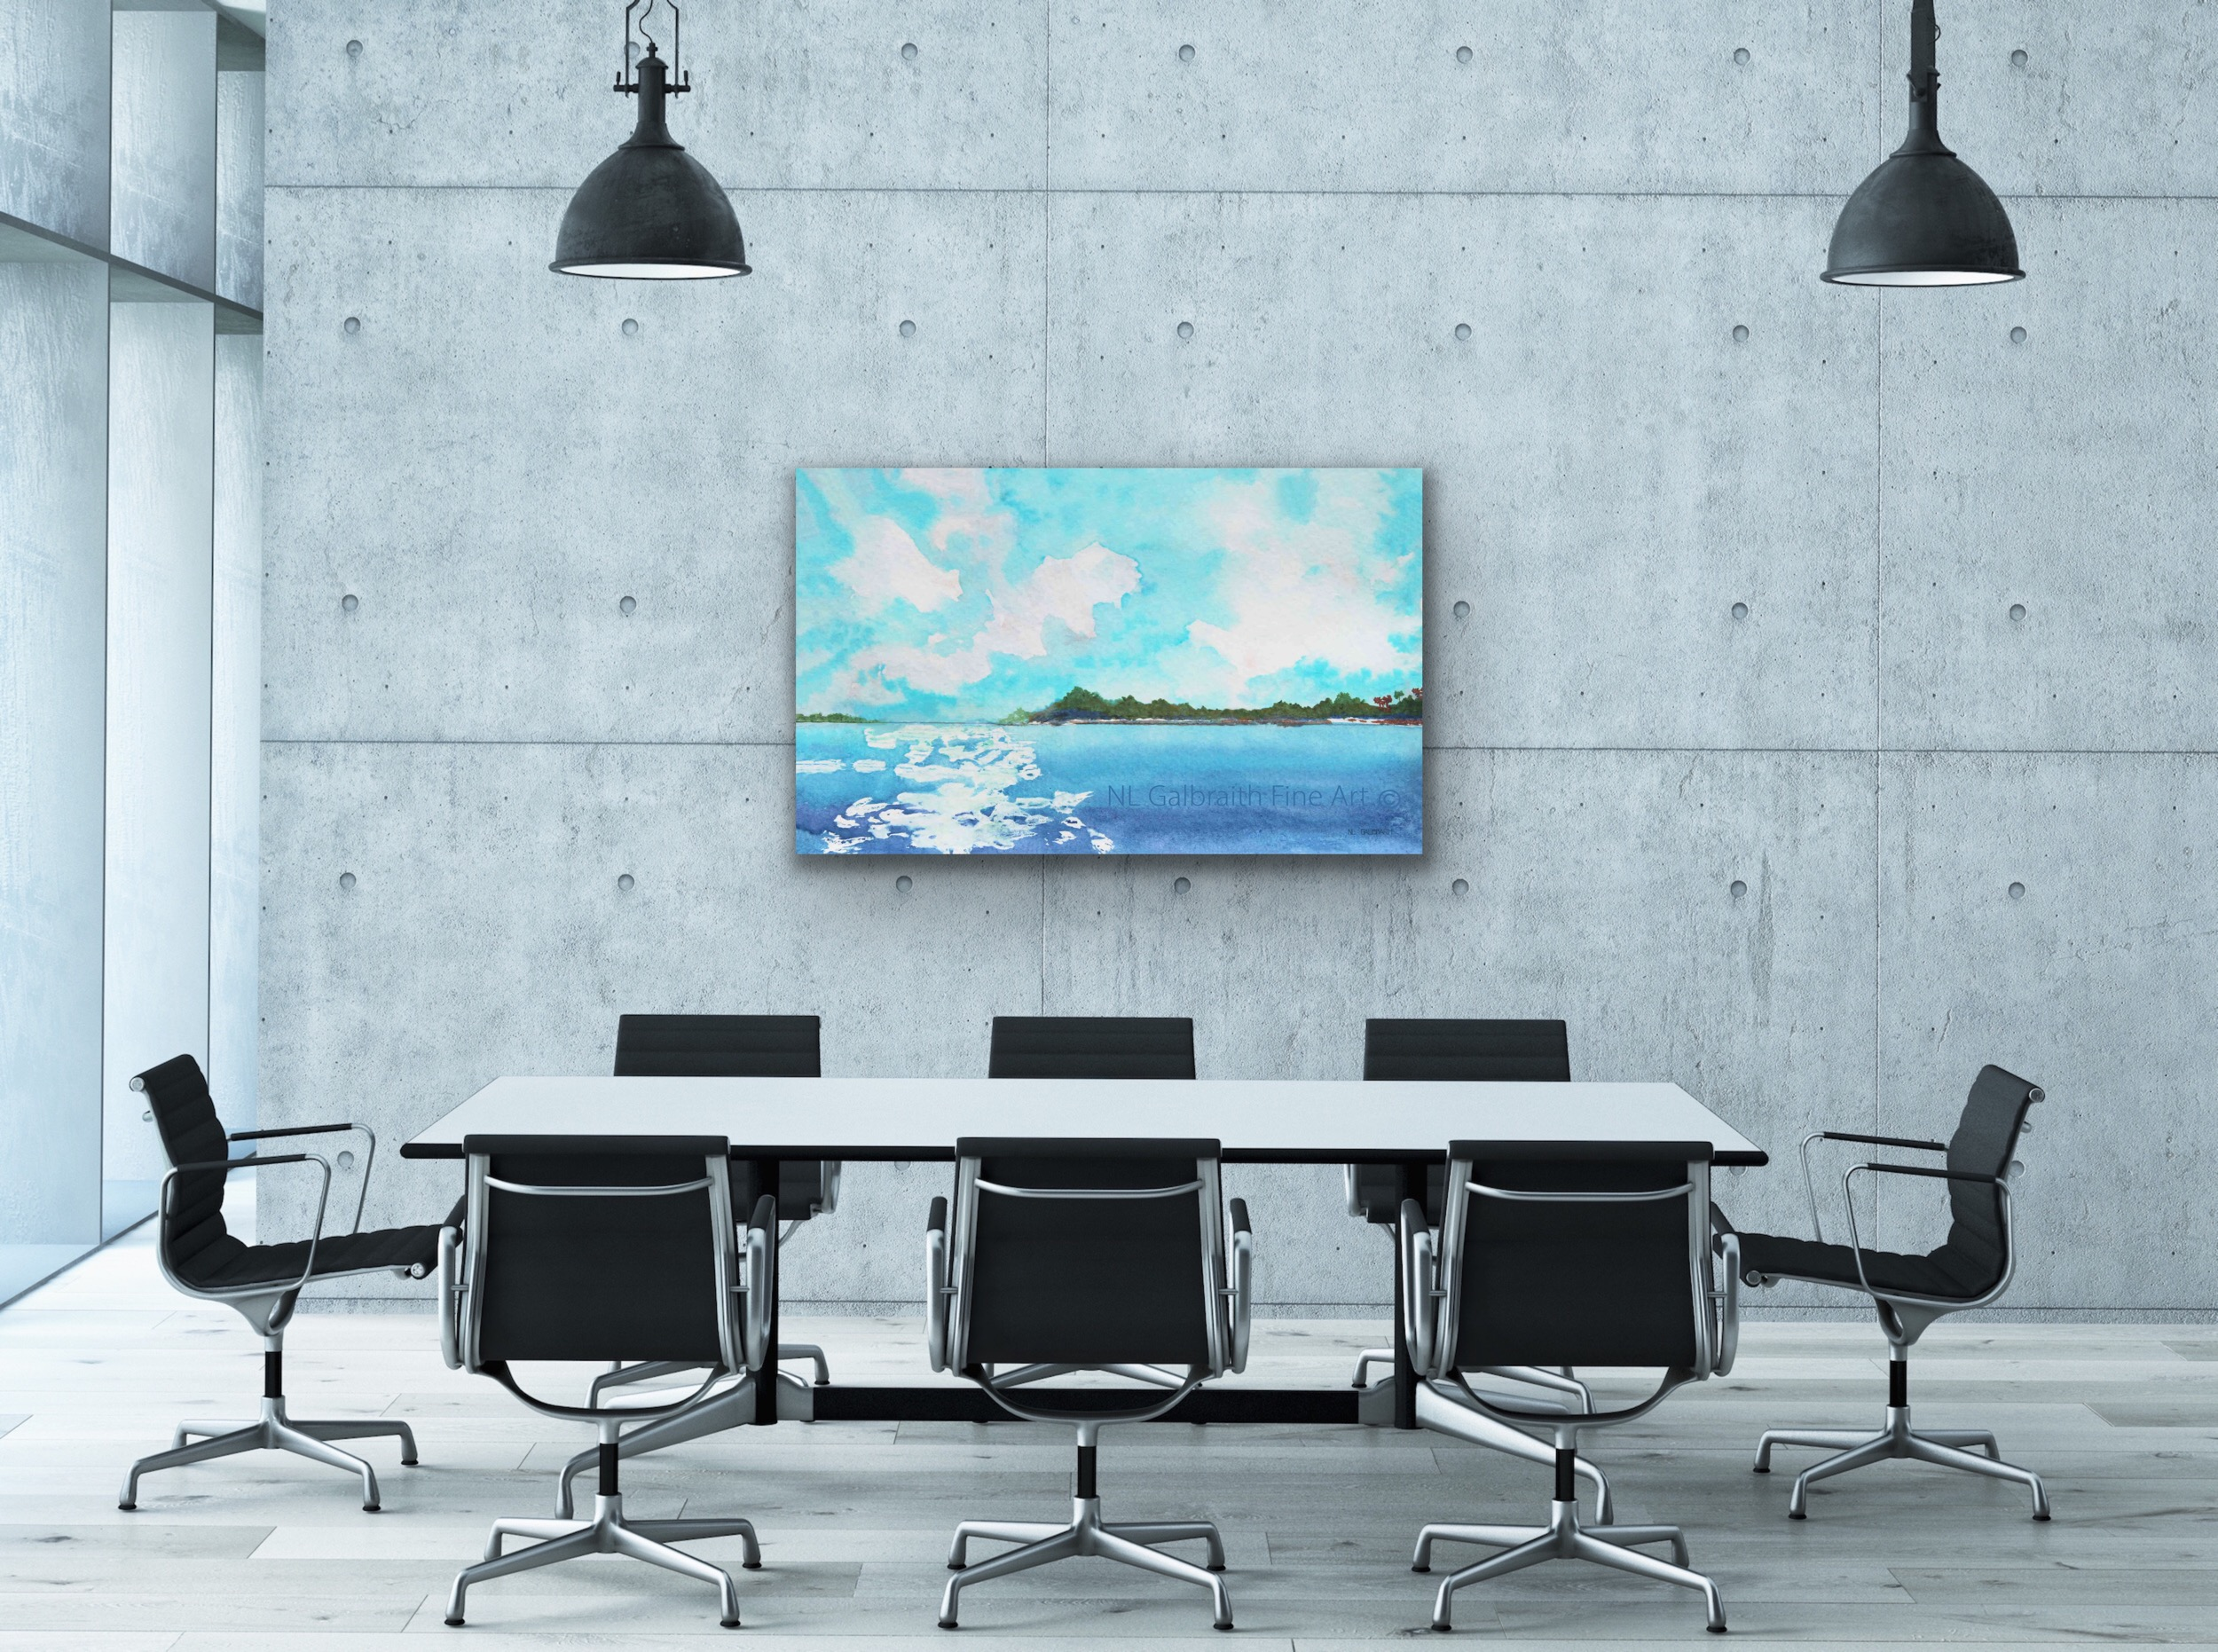 Oversized fine art of mountainous tropical islands in an office conference meeting room